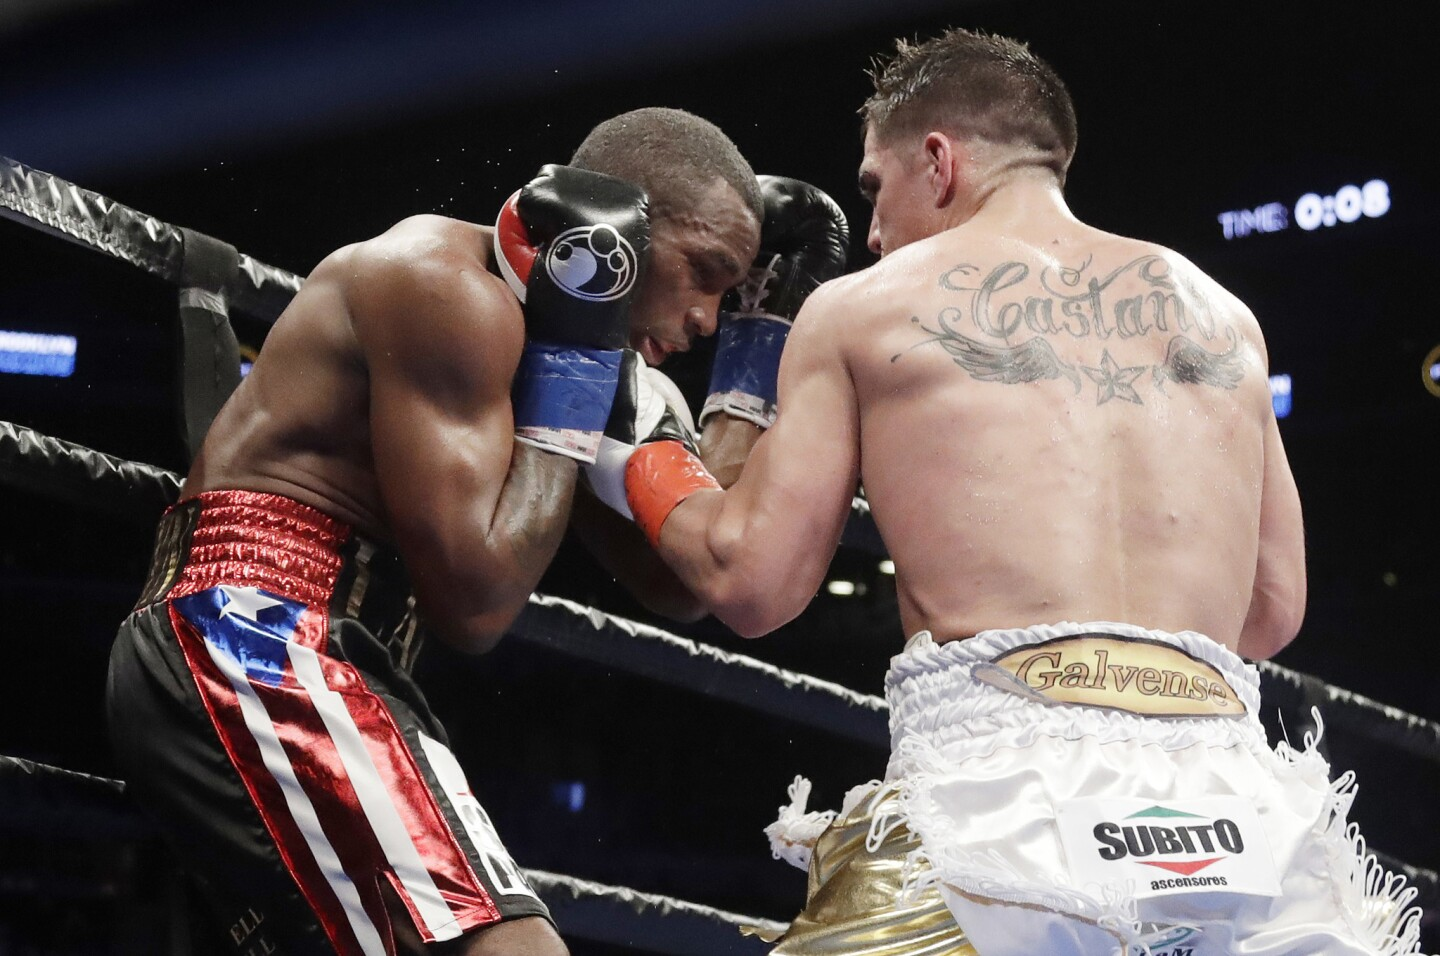 Argentina's Brian Carlos Castano , right, punches Cuba's Erislandy Lara during the eighth round of a WBA super welterweight championship boxing match Saturday, March 2, 2019, in New York.(AP Photo/Frank Franklin II)